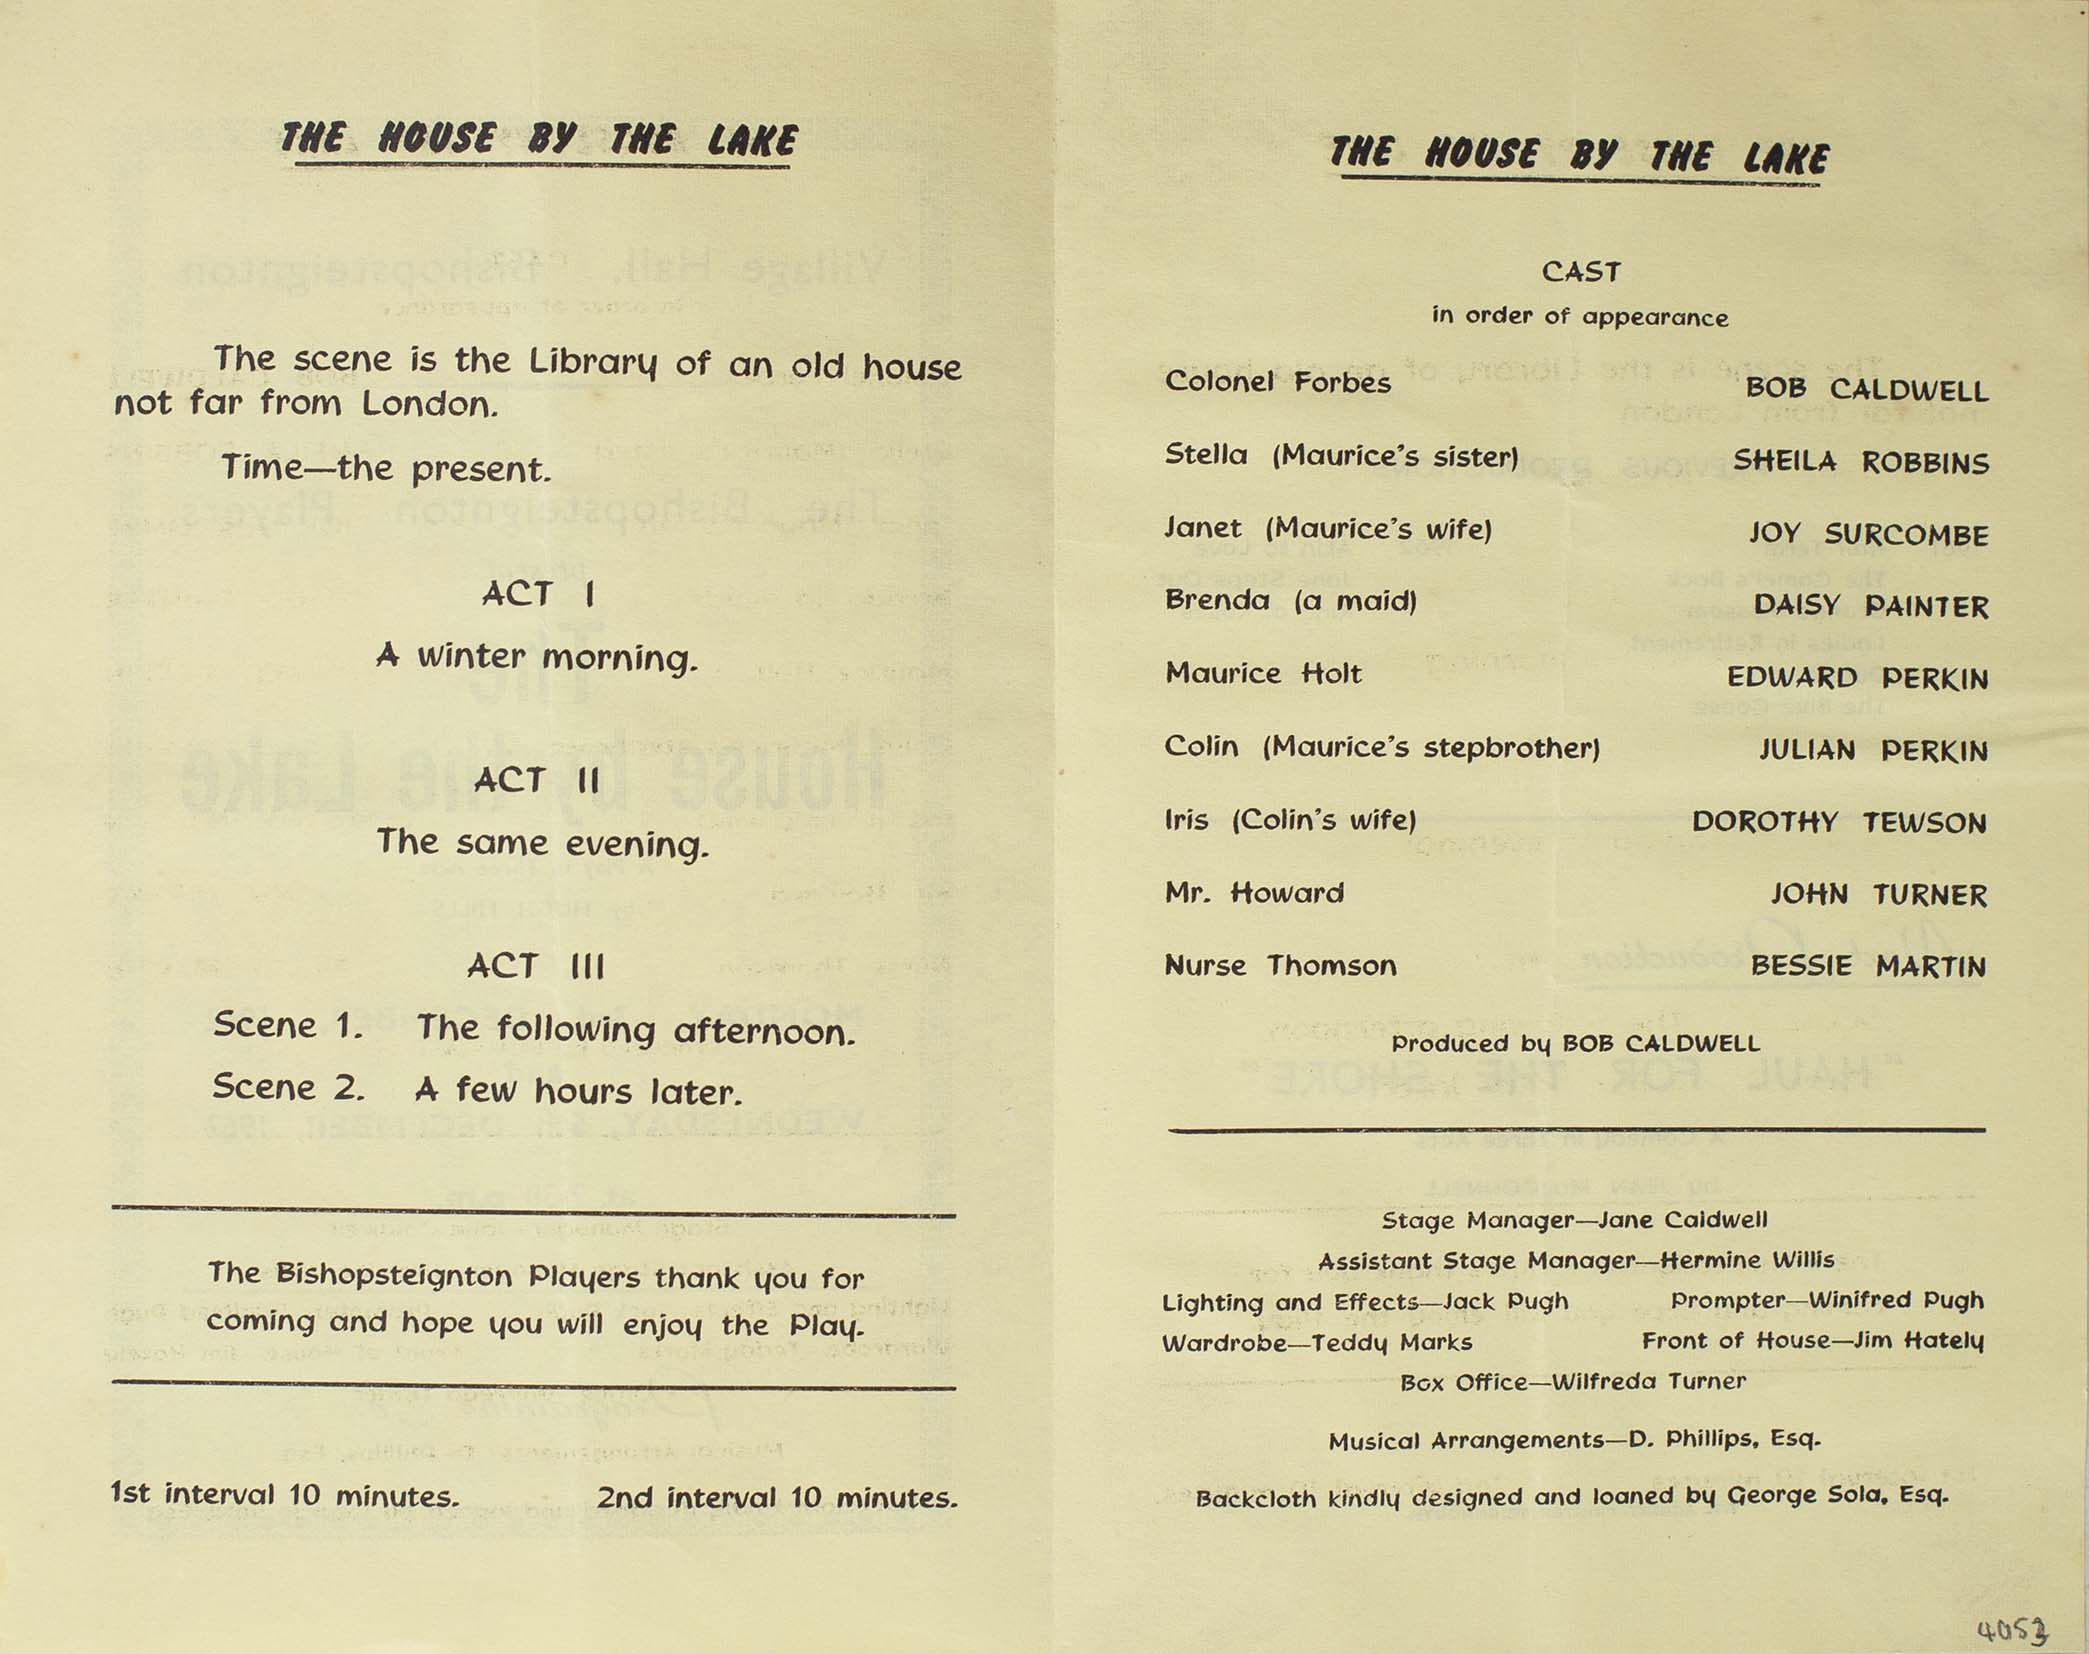 Leaflet to advertise the programme for the play 'The House by the Lake' presented by the Bishopsteignton Players inside